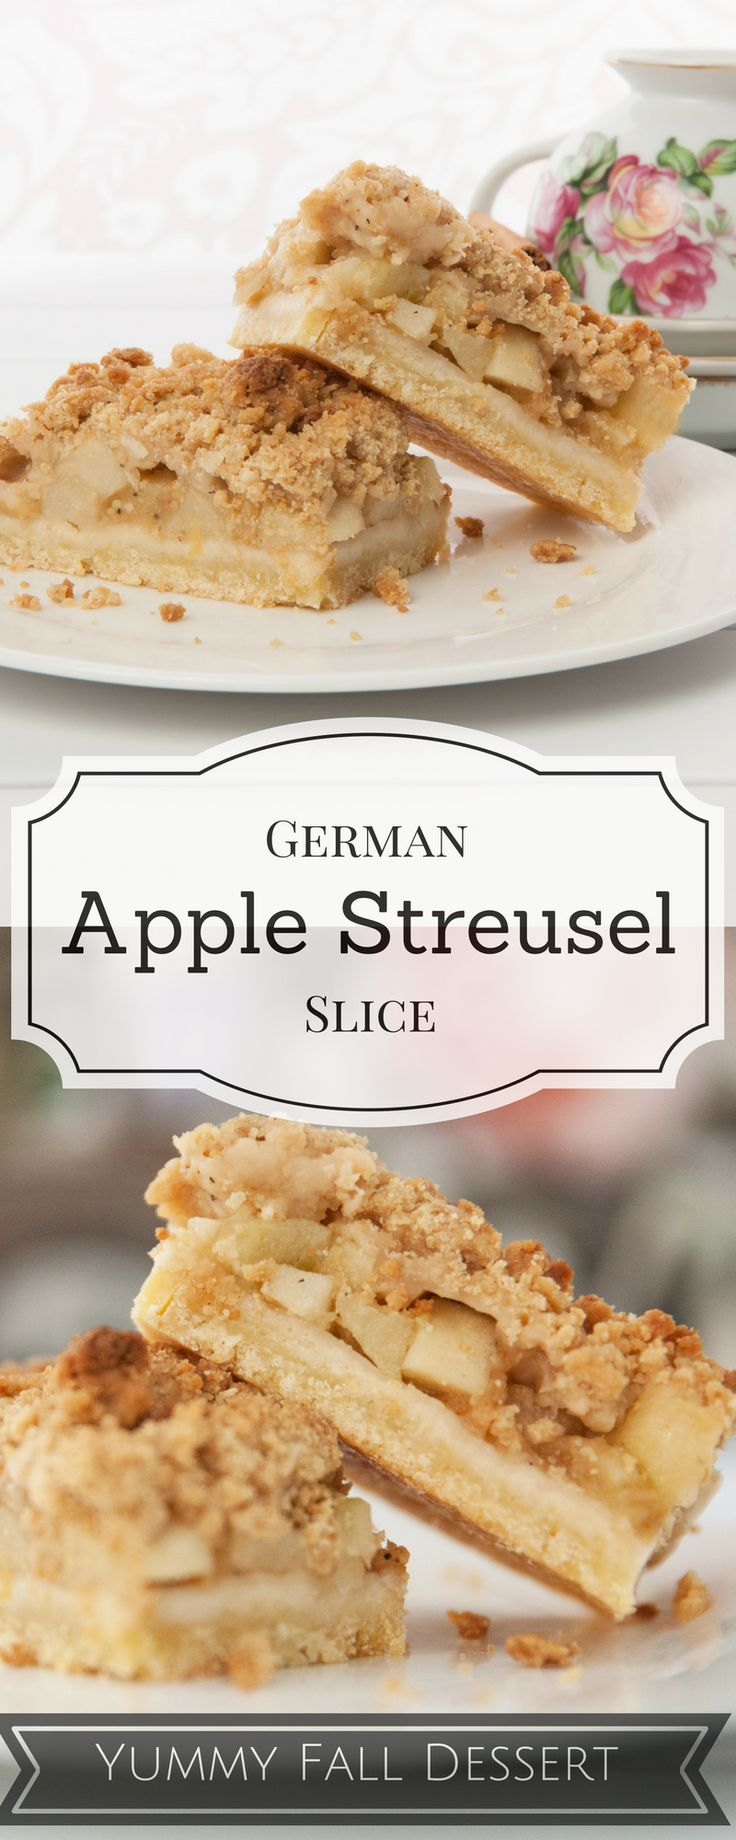 This is the first dessert I will make this fall! The perfect warming dessert! Recipe is for a large sheet cake. #apple #fall Can be made in the Thermomix #thermomix (Canned Apple Recipes)